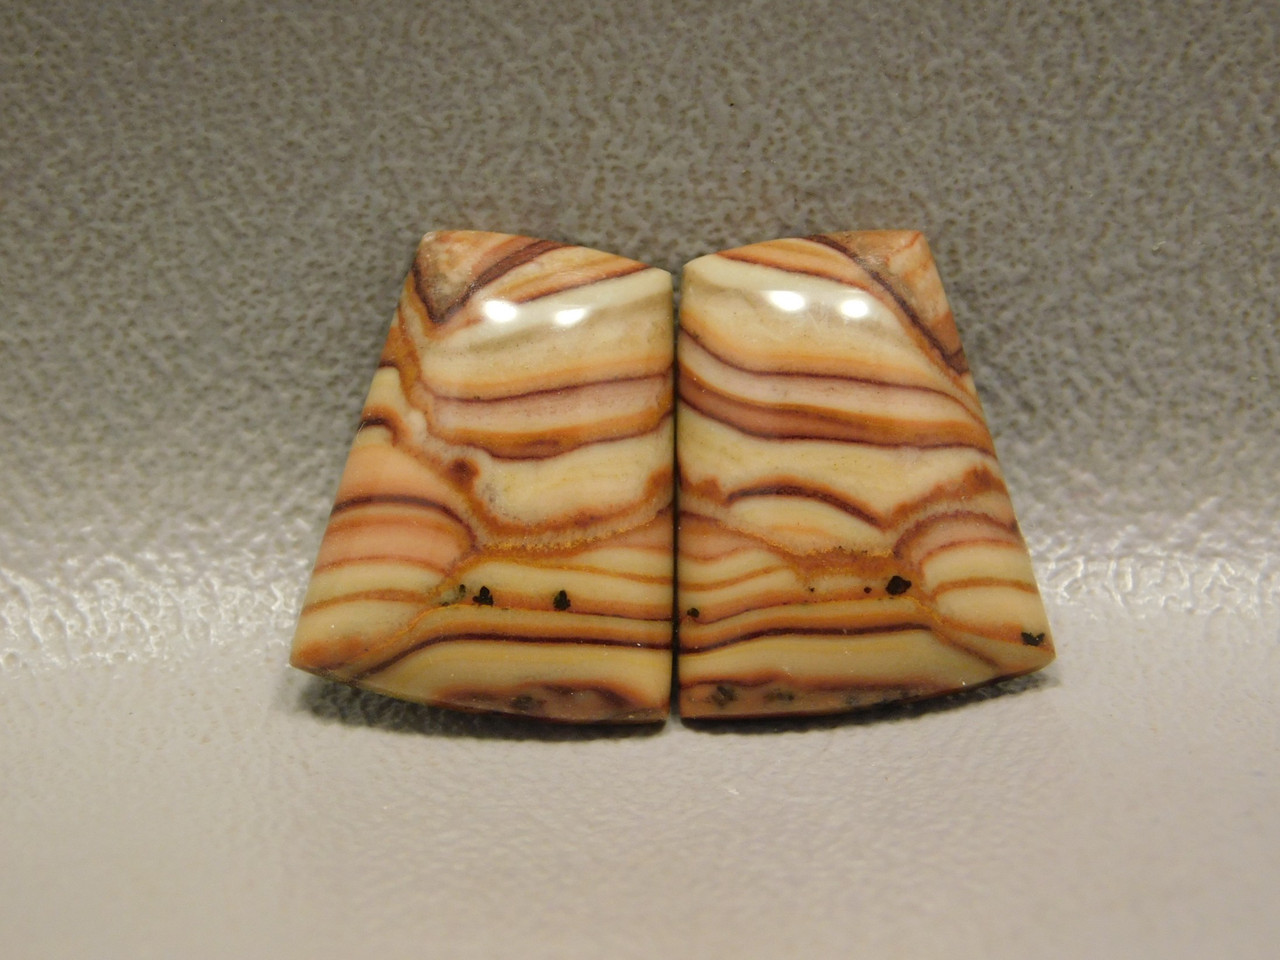 Wave Dolomite Stone Cabochons Matched Pairs for Earrings #3